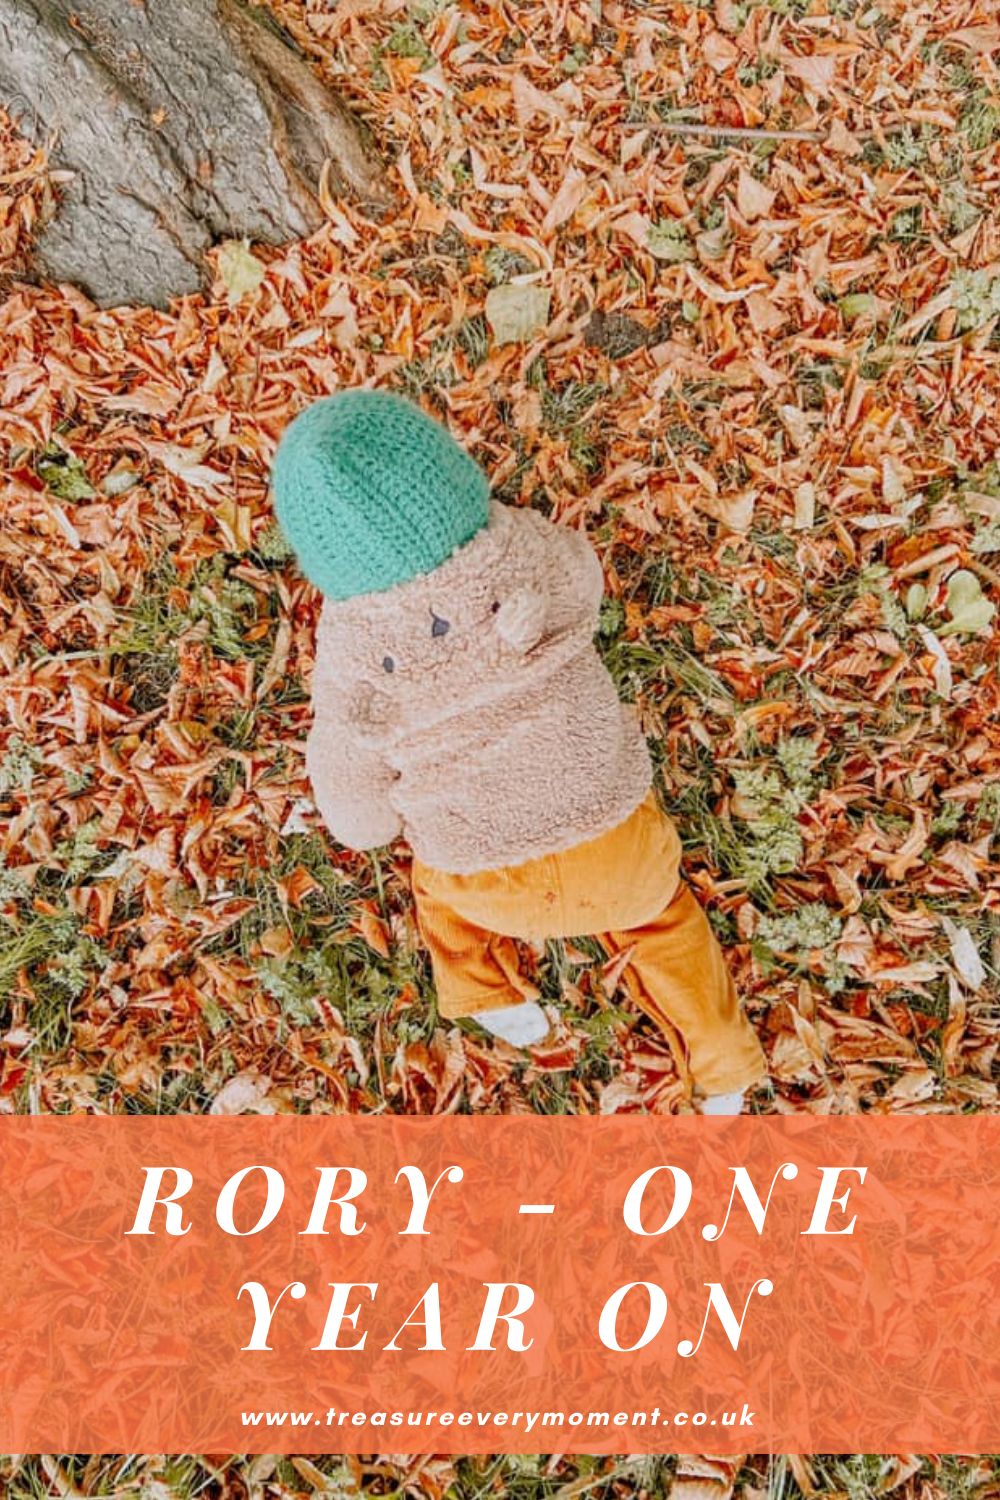 FAMILY: Rory - One Year On